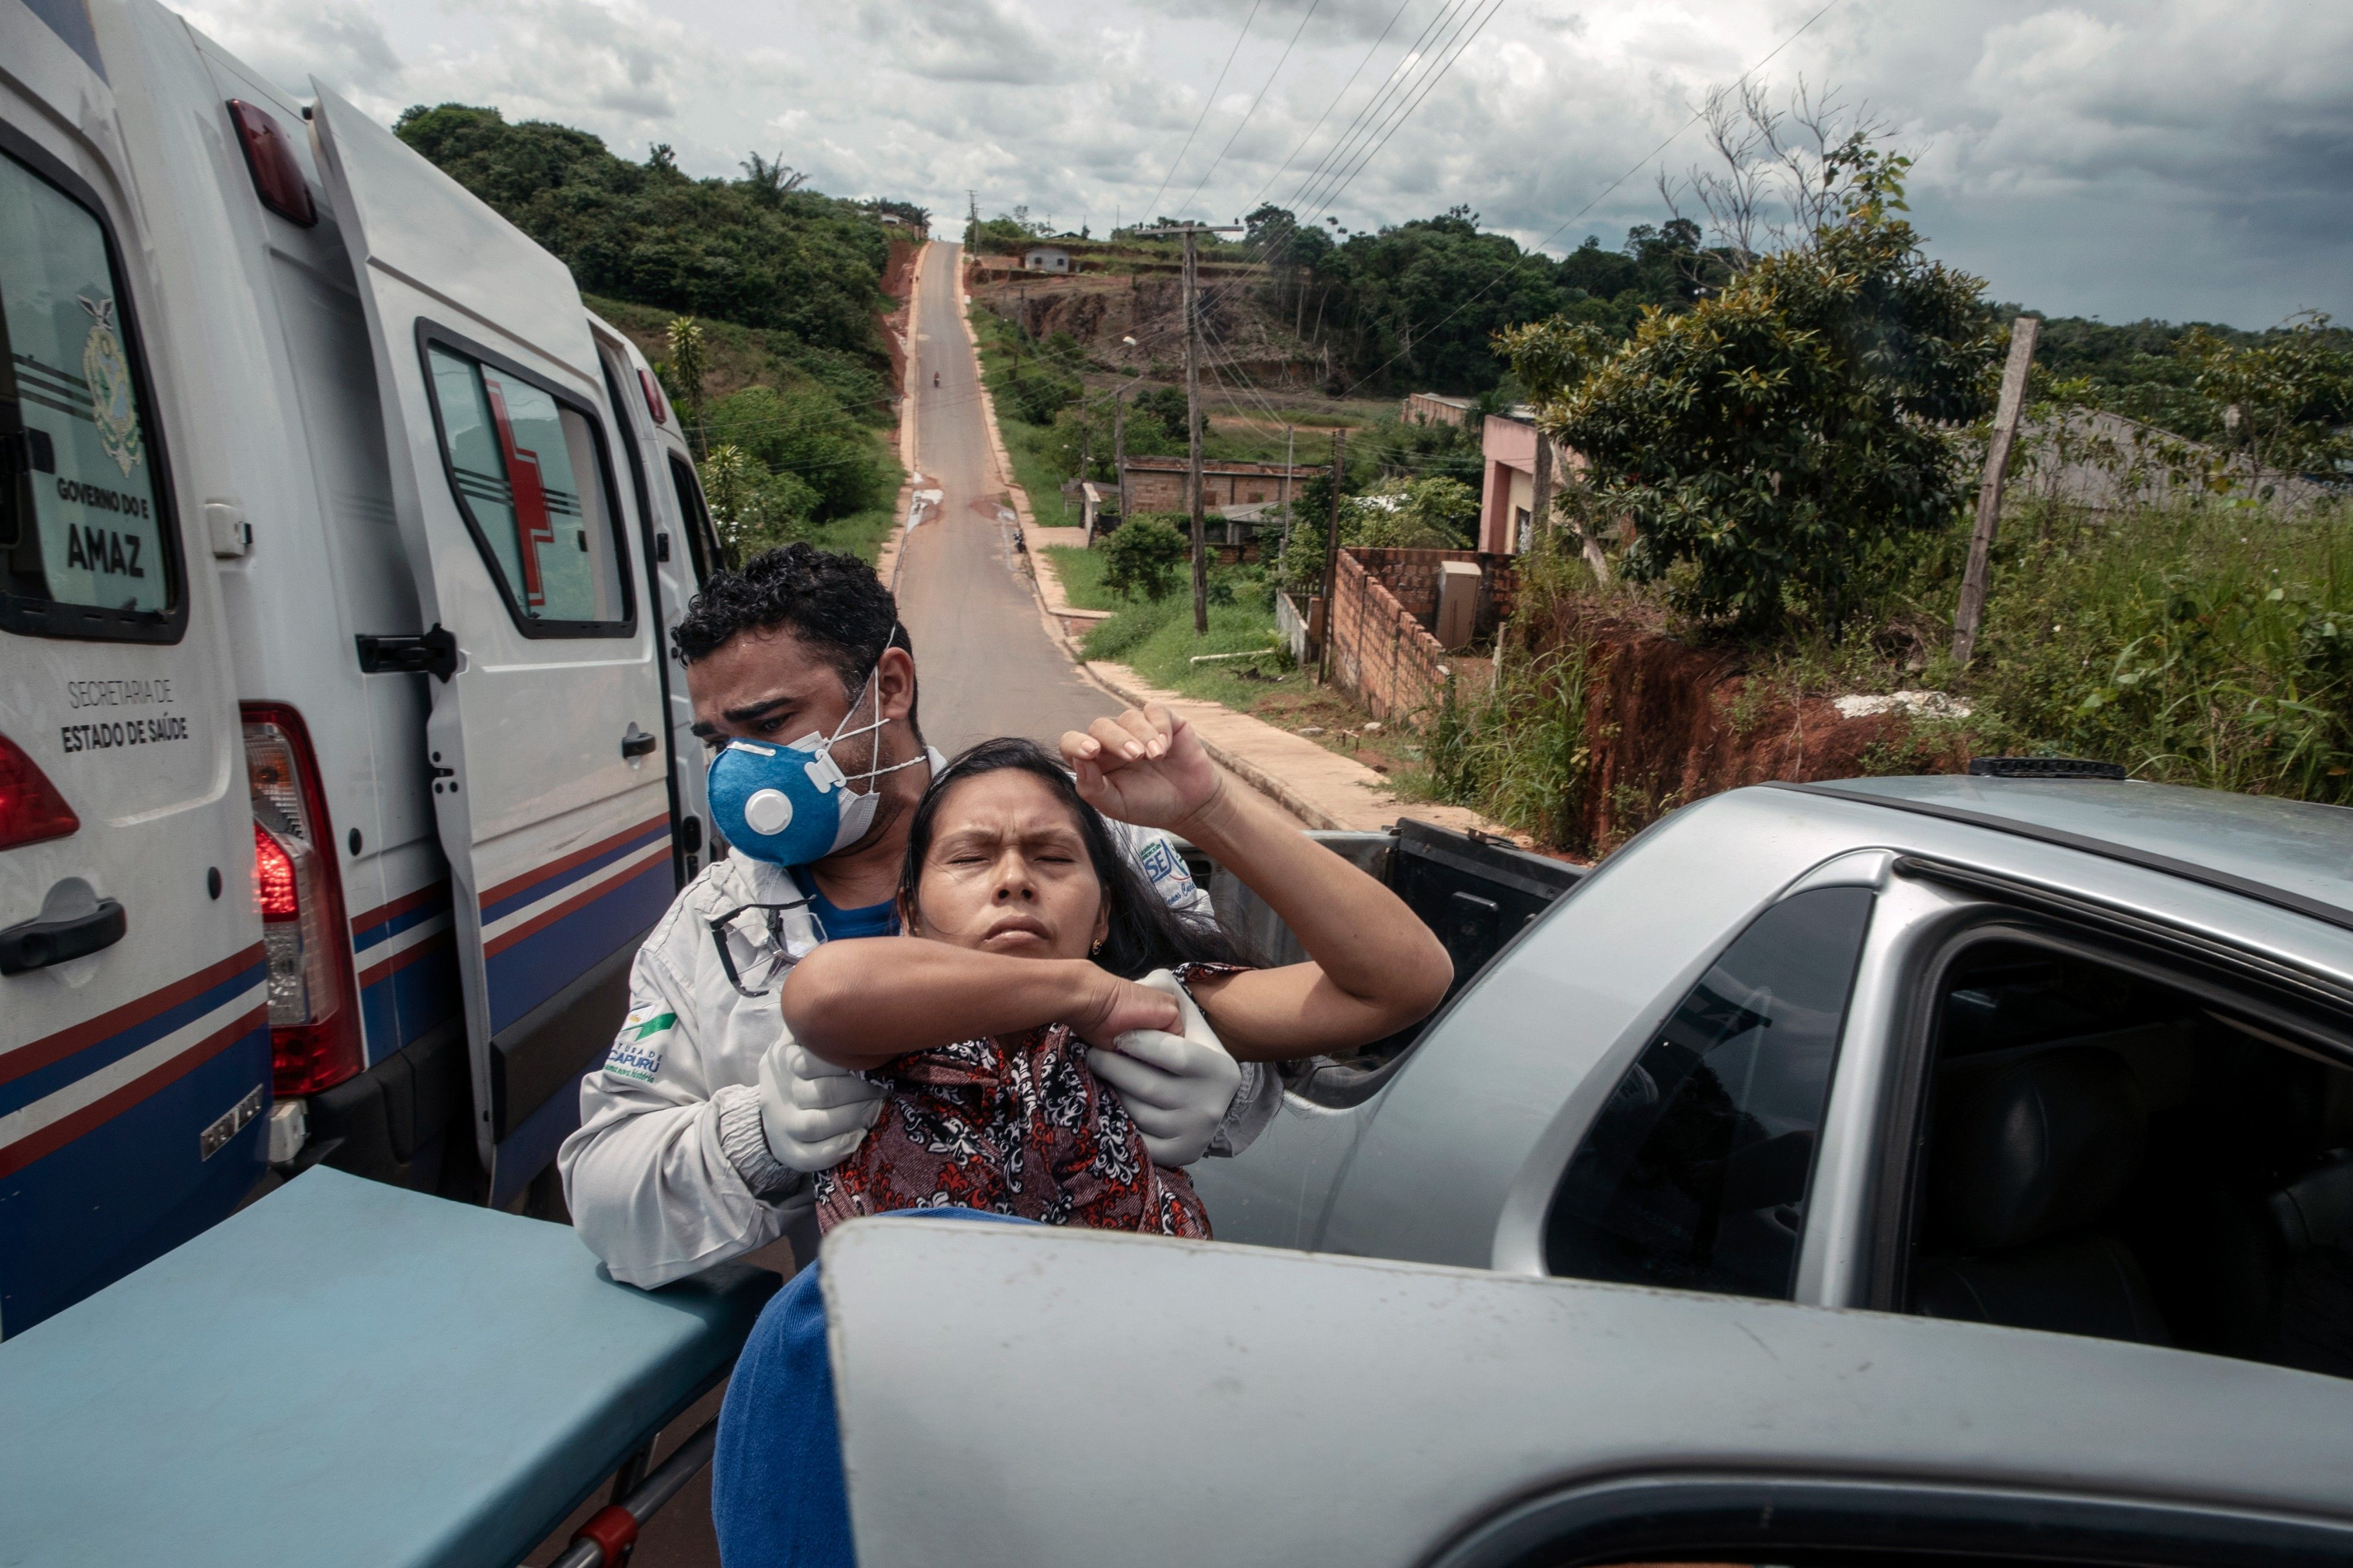 Report on the Covid-19 epidemic in the Amazon.